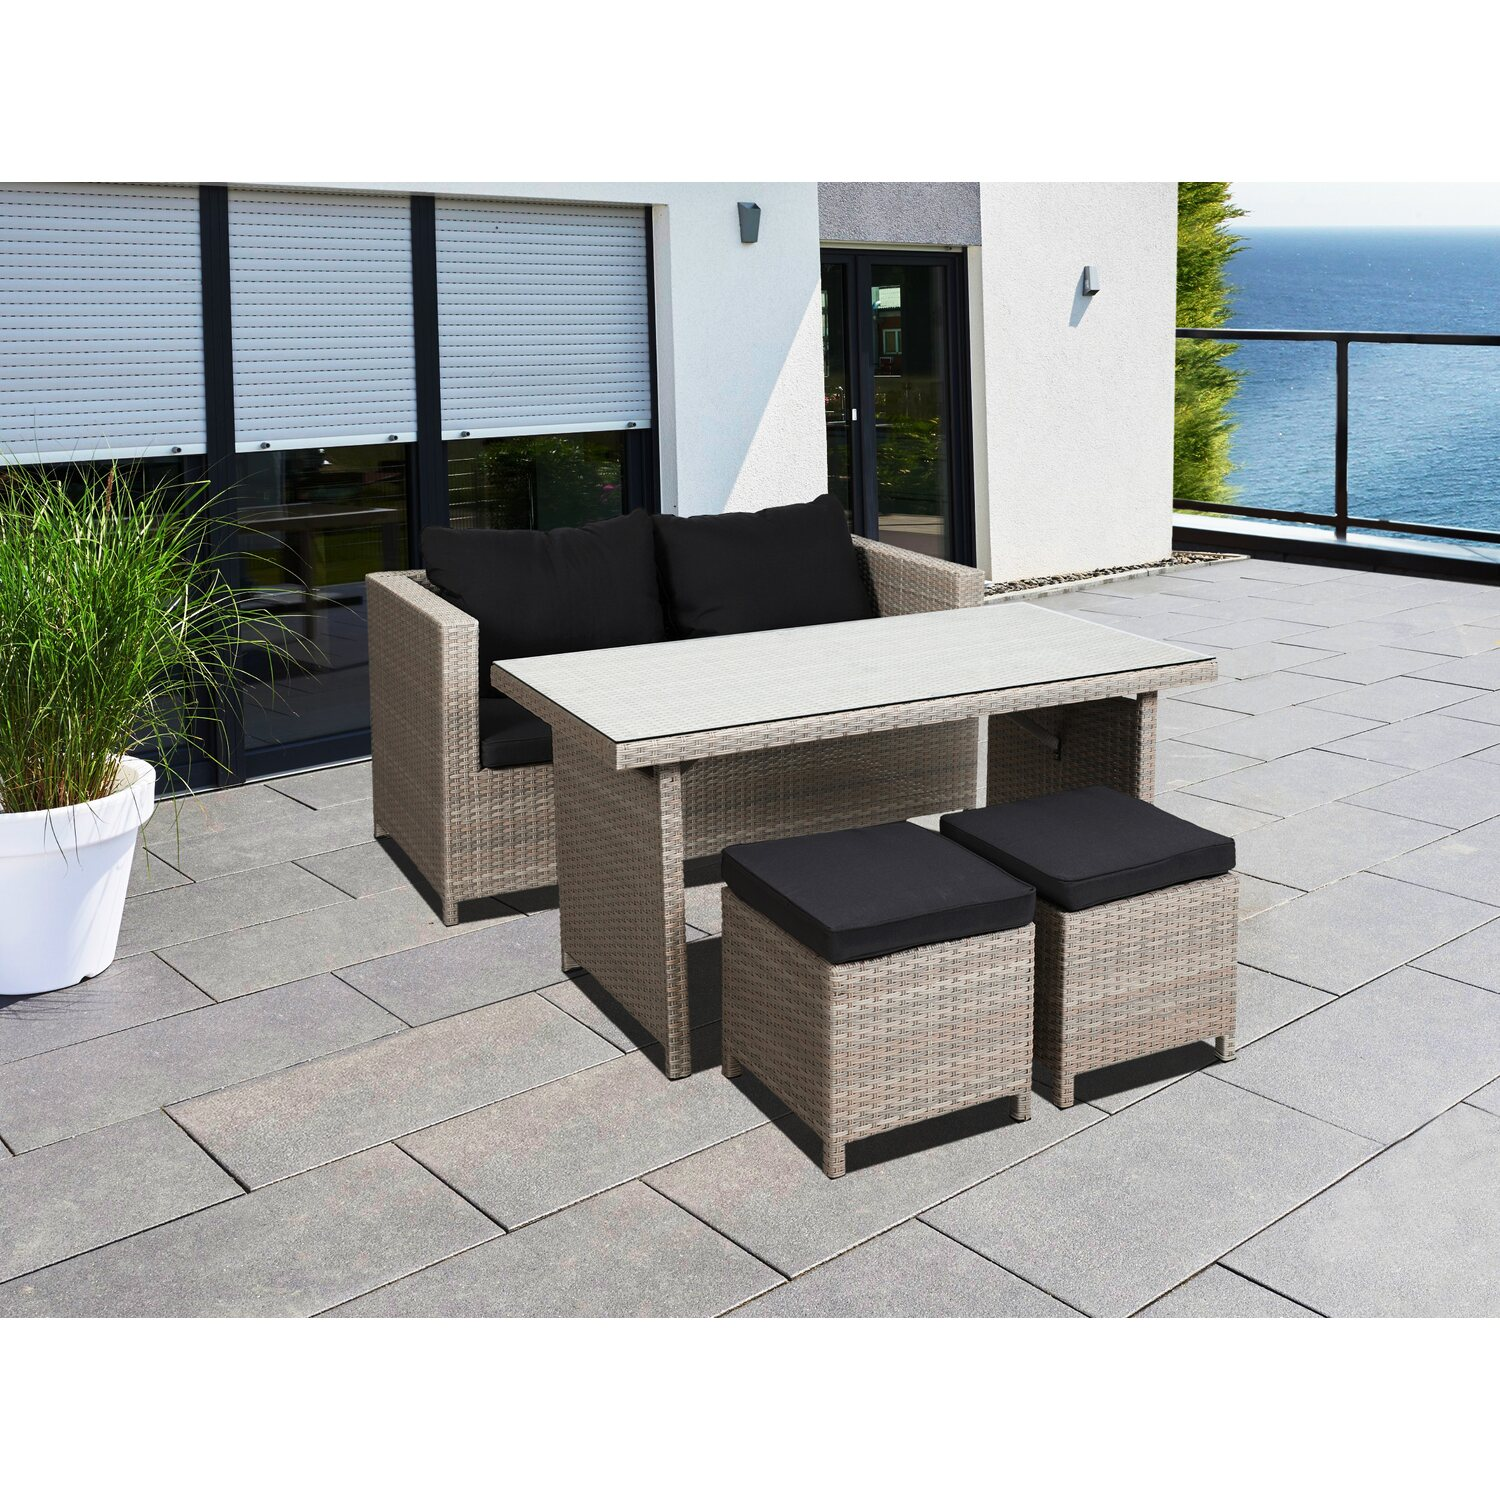 Greemotion Garten-Lounge Set Kiel Polyrattan Be...